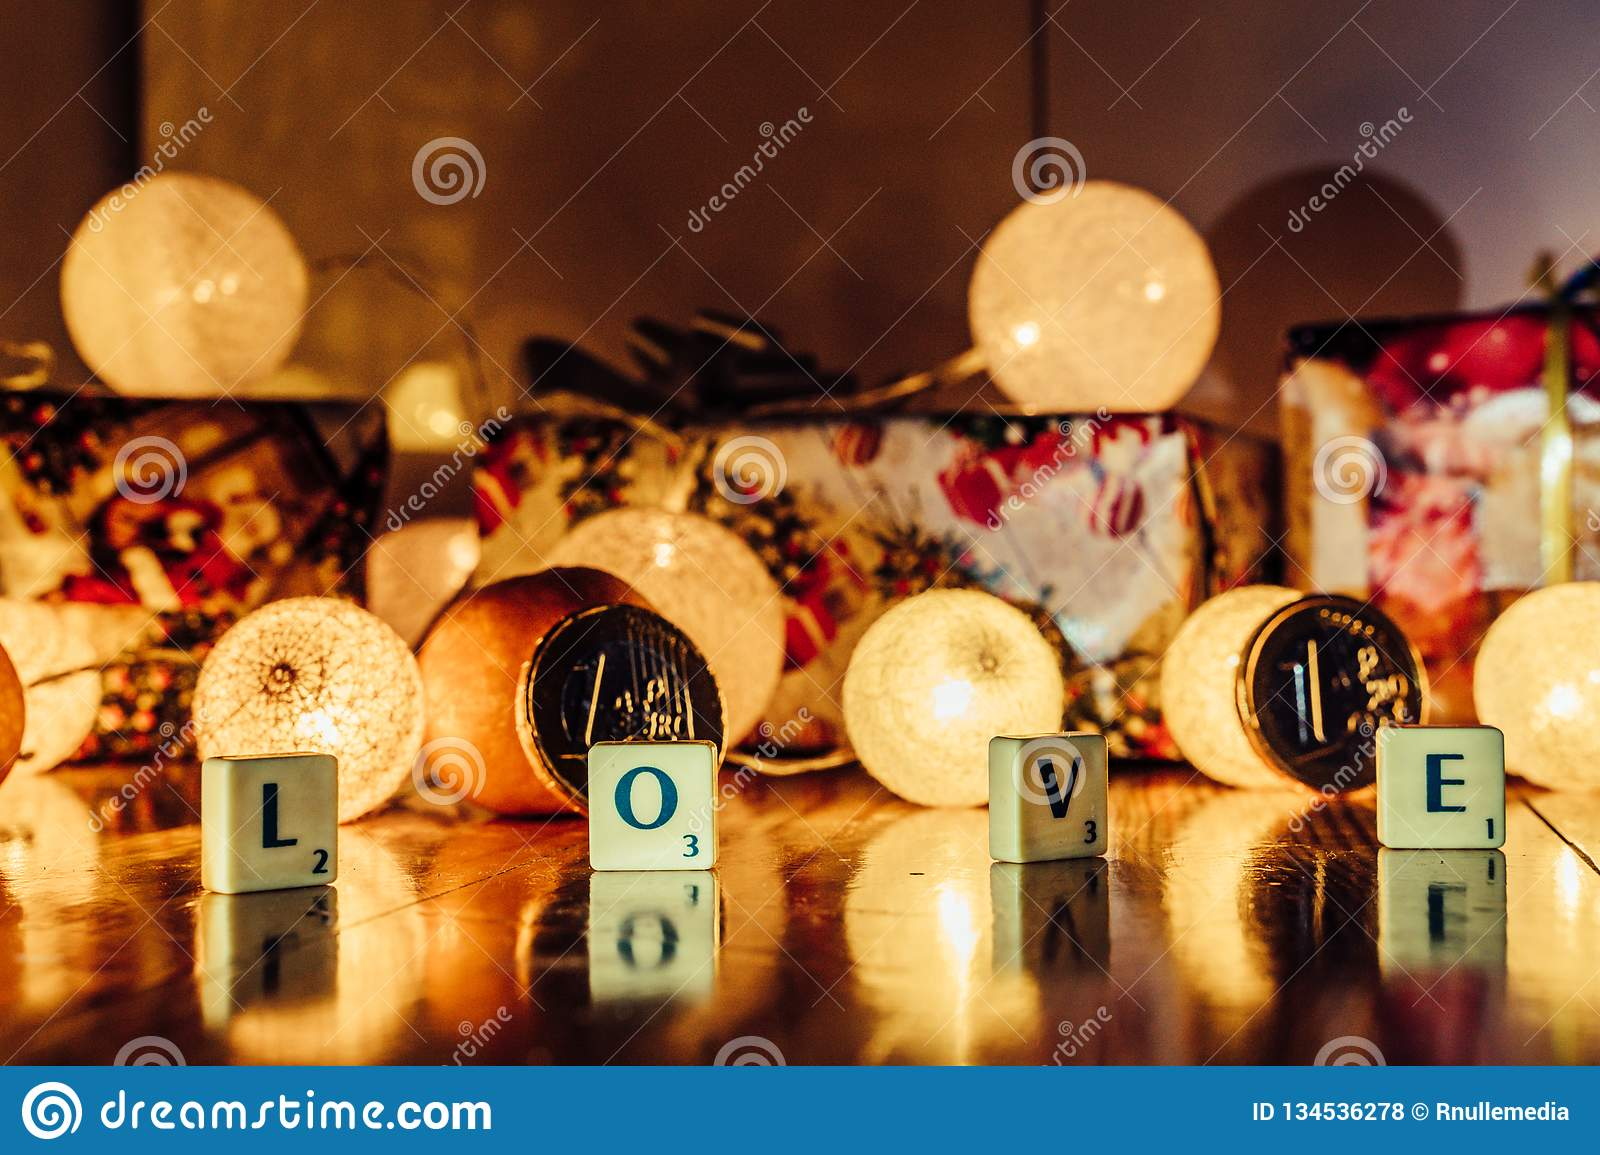 Word \'Love\' set on the Wooden Background from Letters of Board Game With the Blurred Christmas Lights, Fruits and Presents in th. E Background together with royalty free stock photos